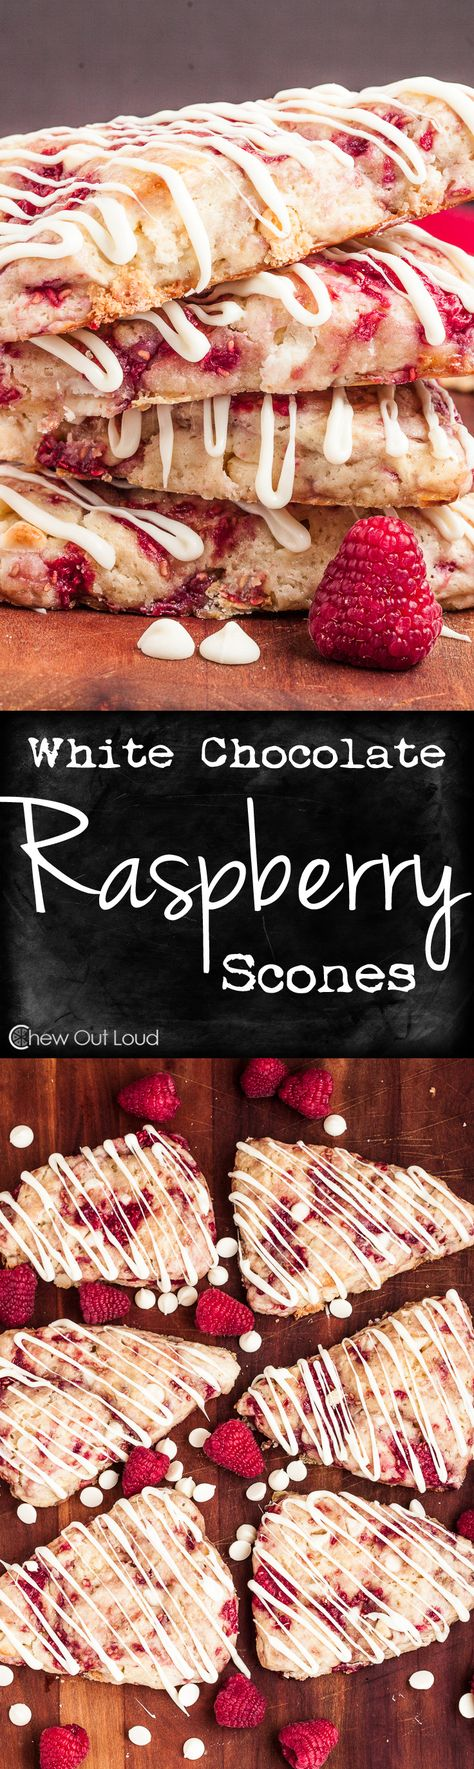 These White Chocolate Raspberry Scones are superior in moistness, deliciously tender, and full of flavor. They're easy to make, and dough can be made ahead of time. #breakfast #brunch #recipe